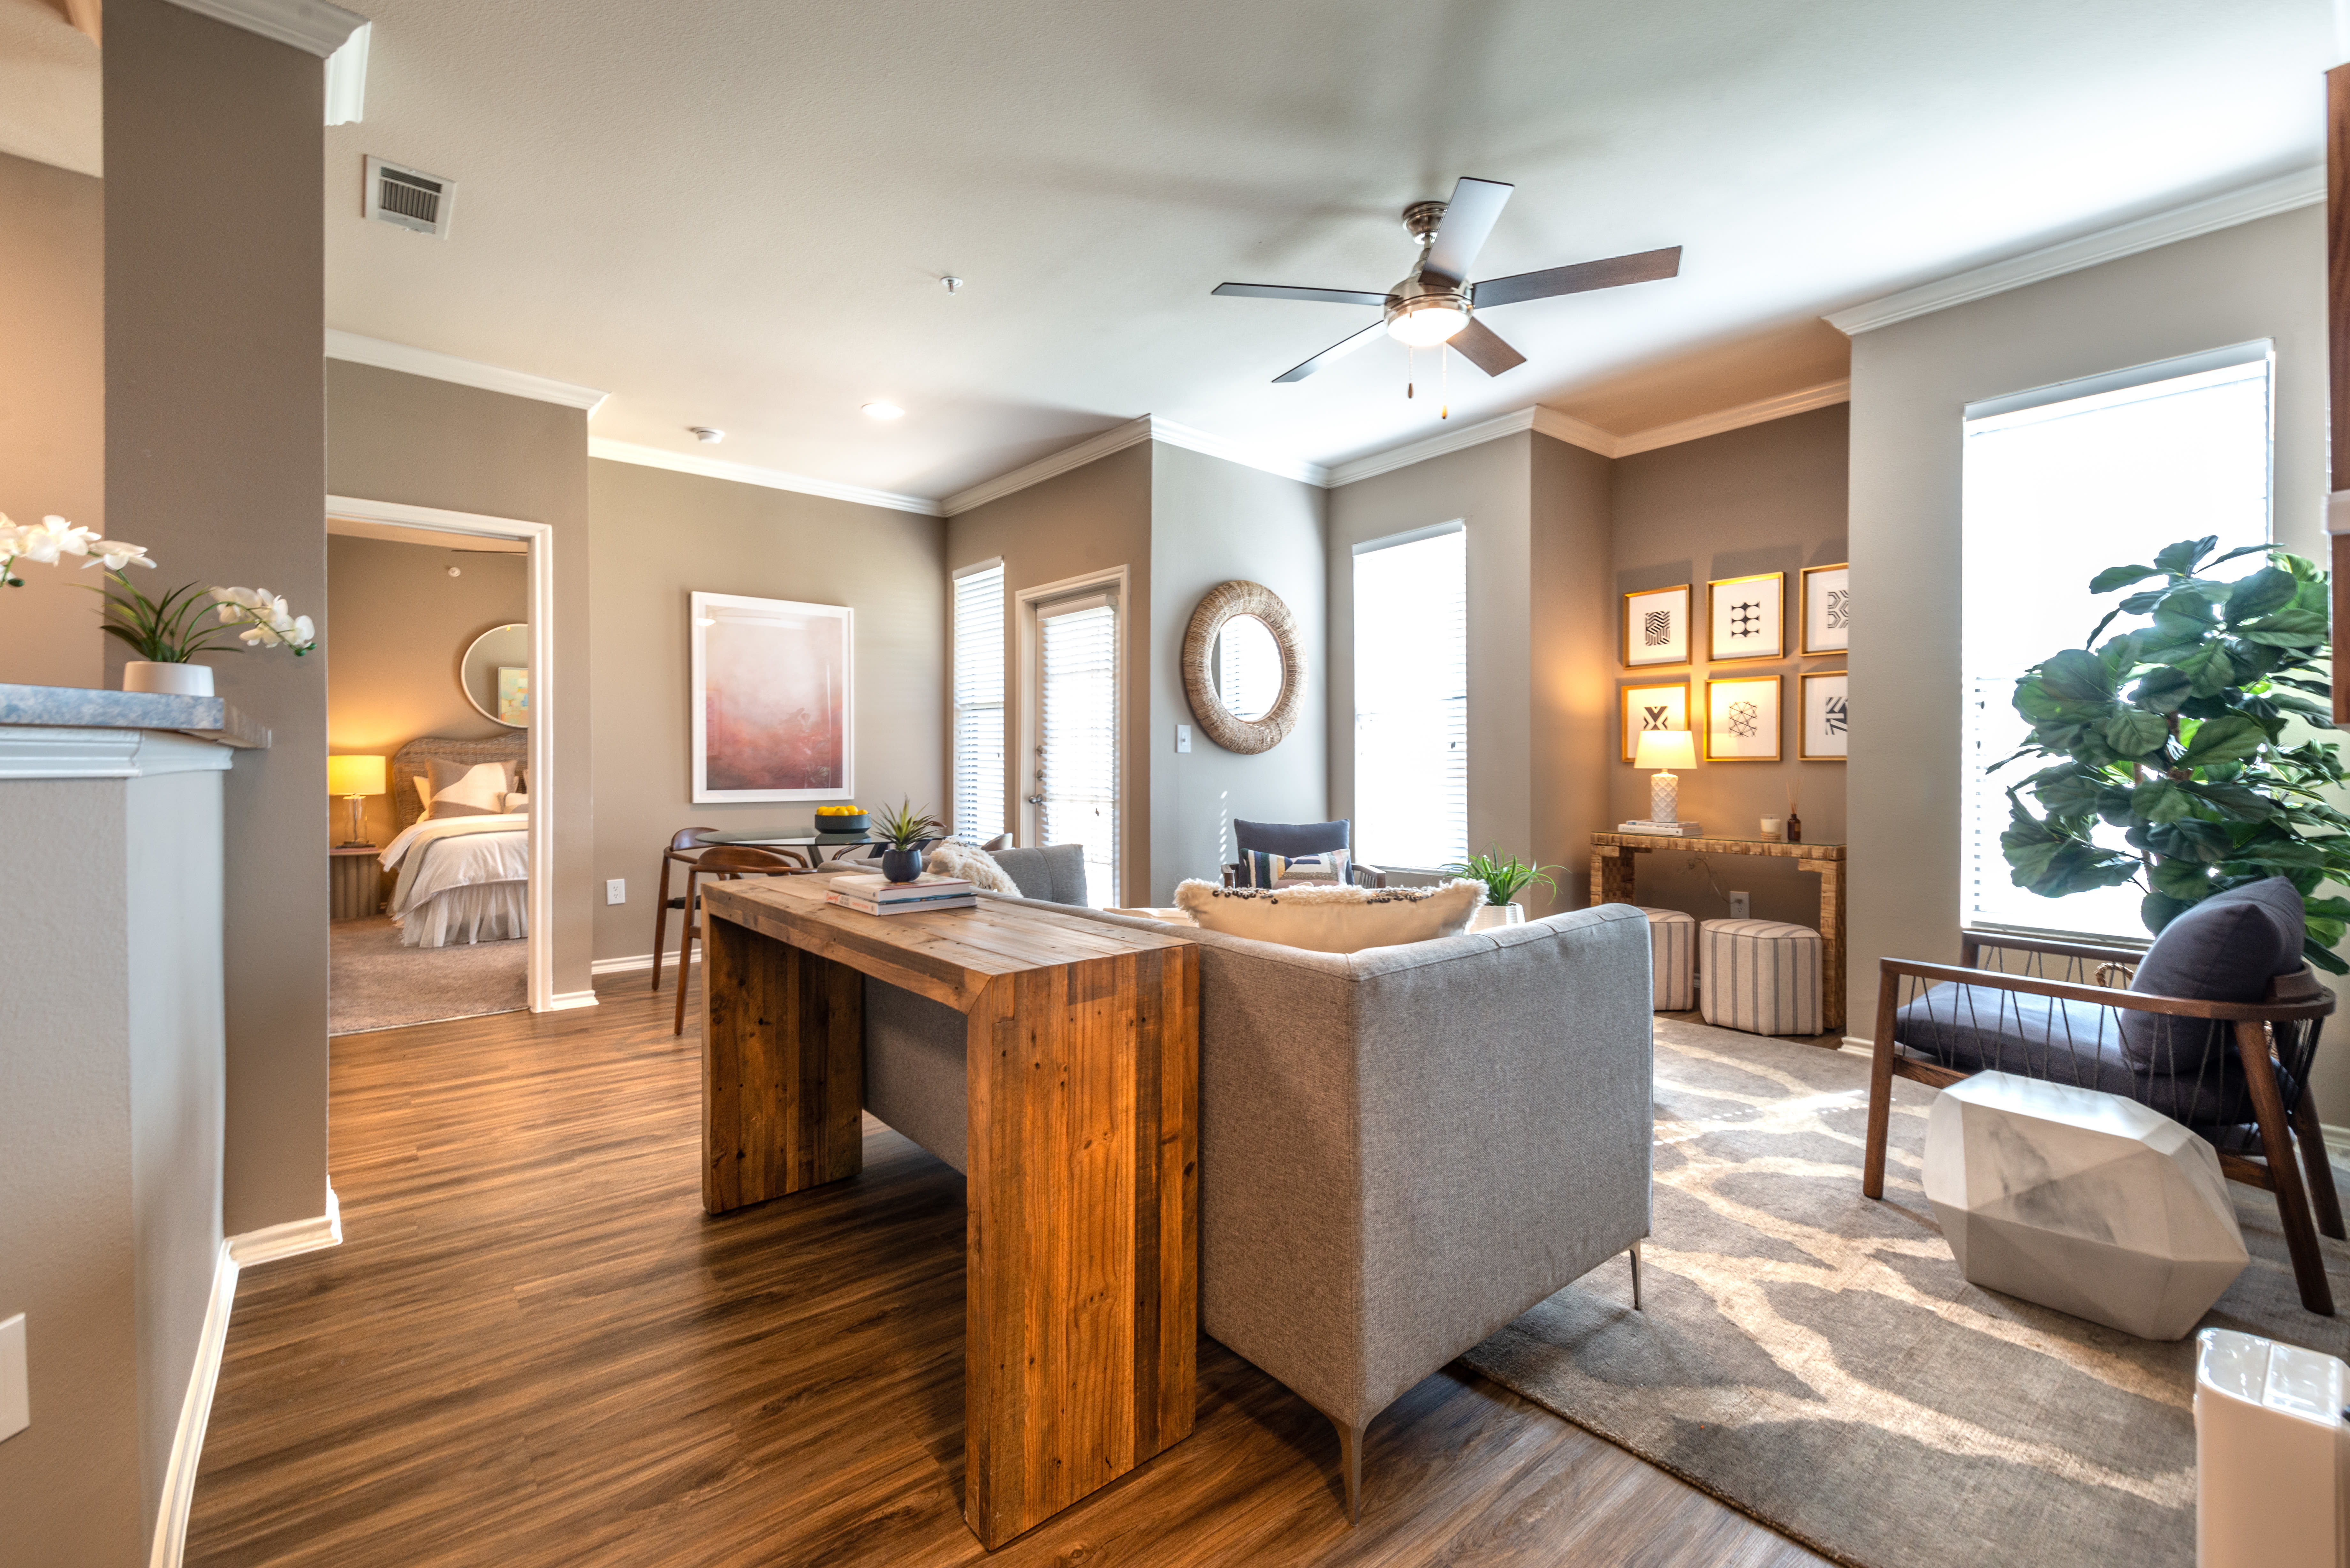 Open floor plan format with spacious living space and a ceiling fan in a model apartment's living area at Olympus Team Ranch in Benbrook, Texas